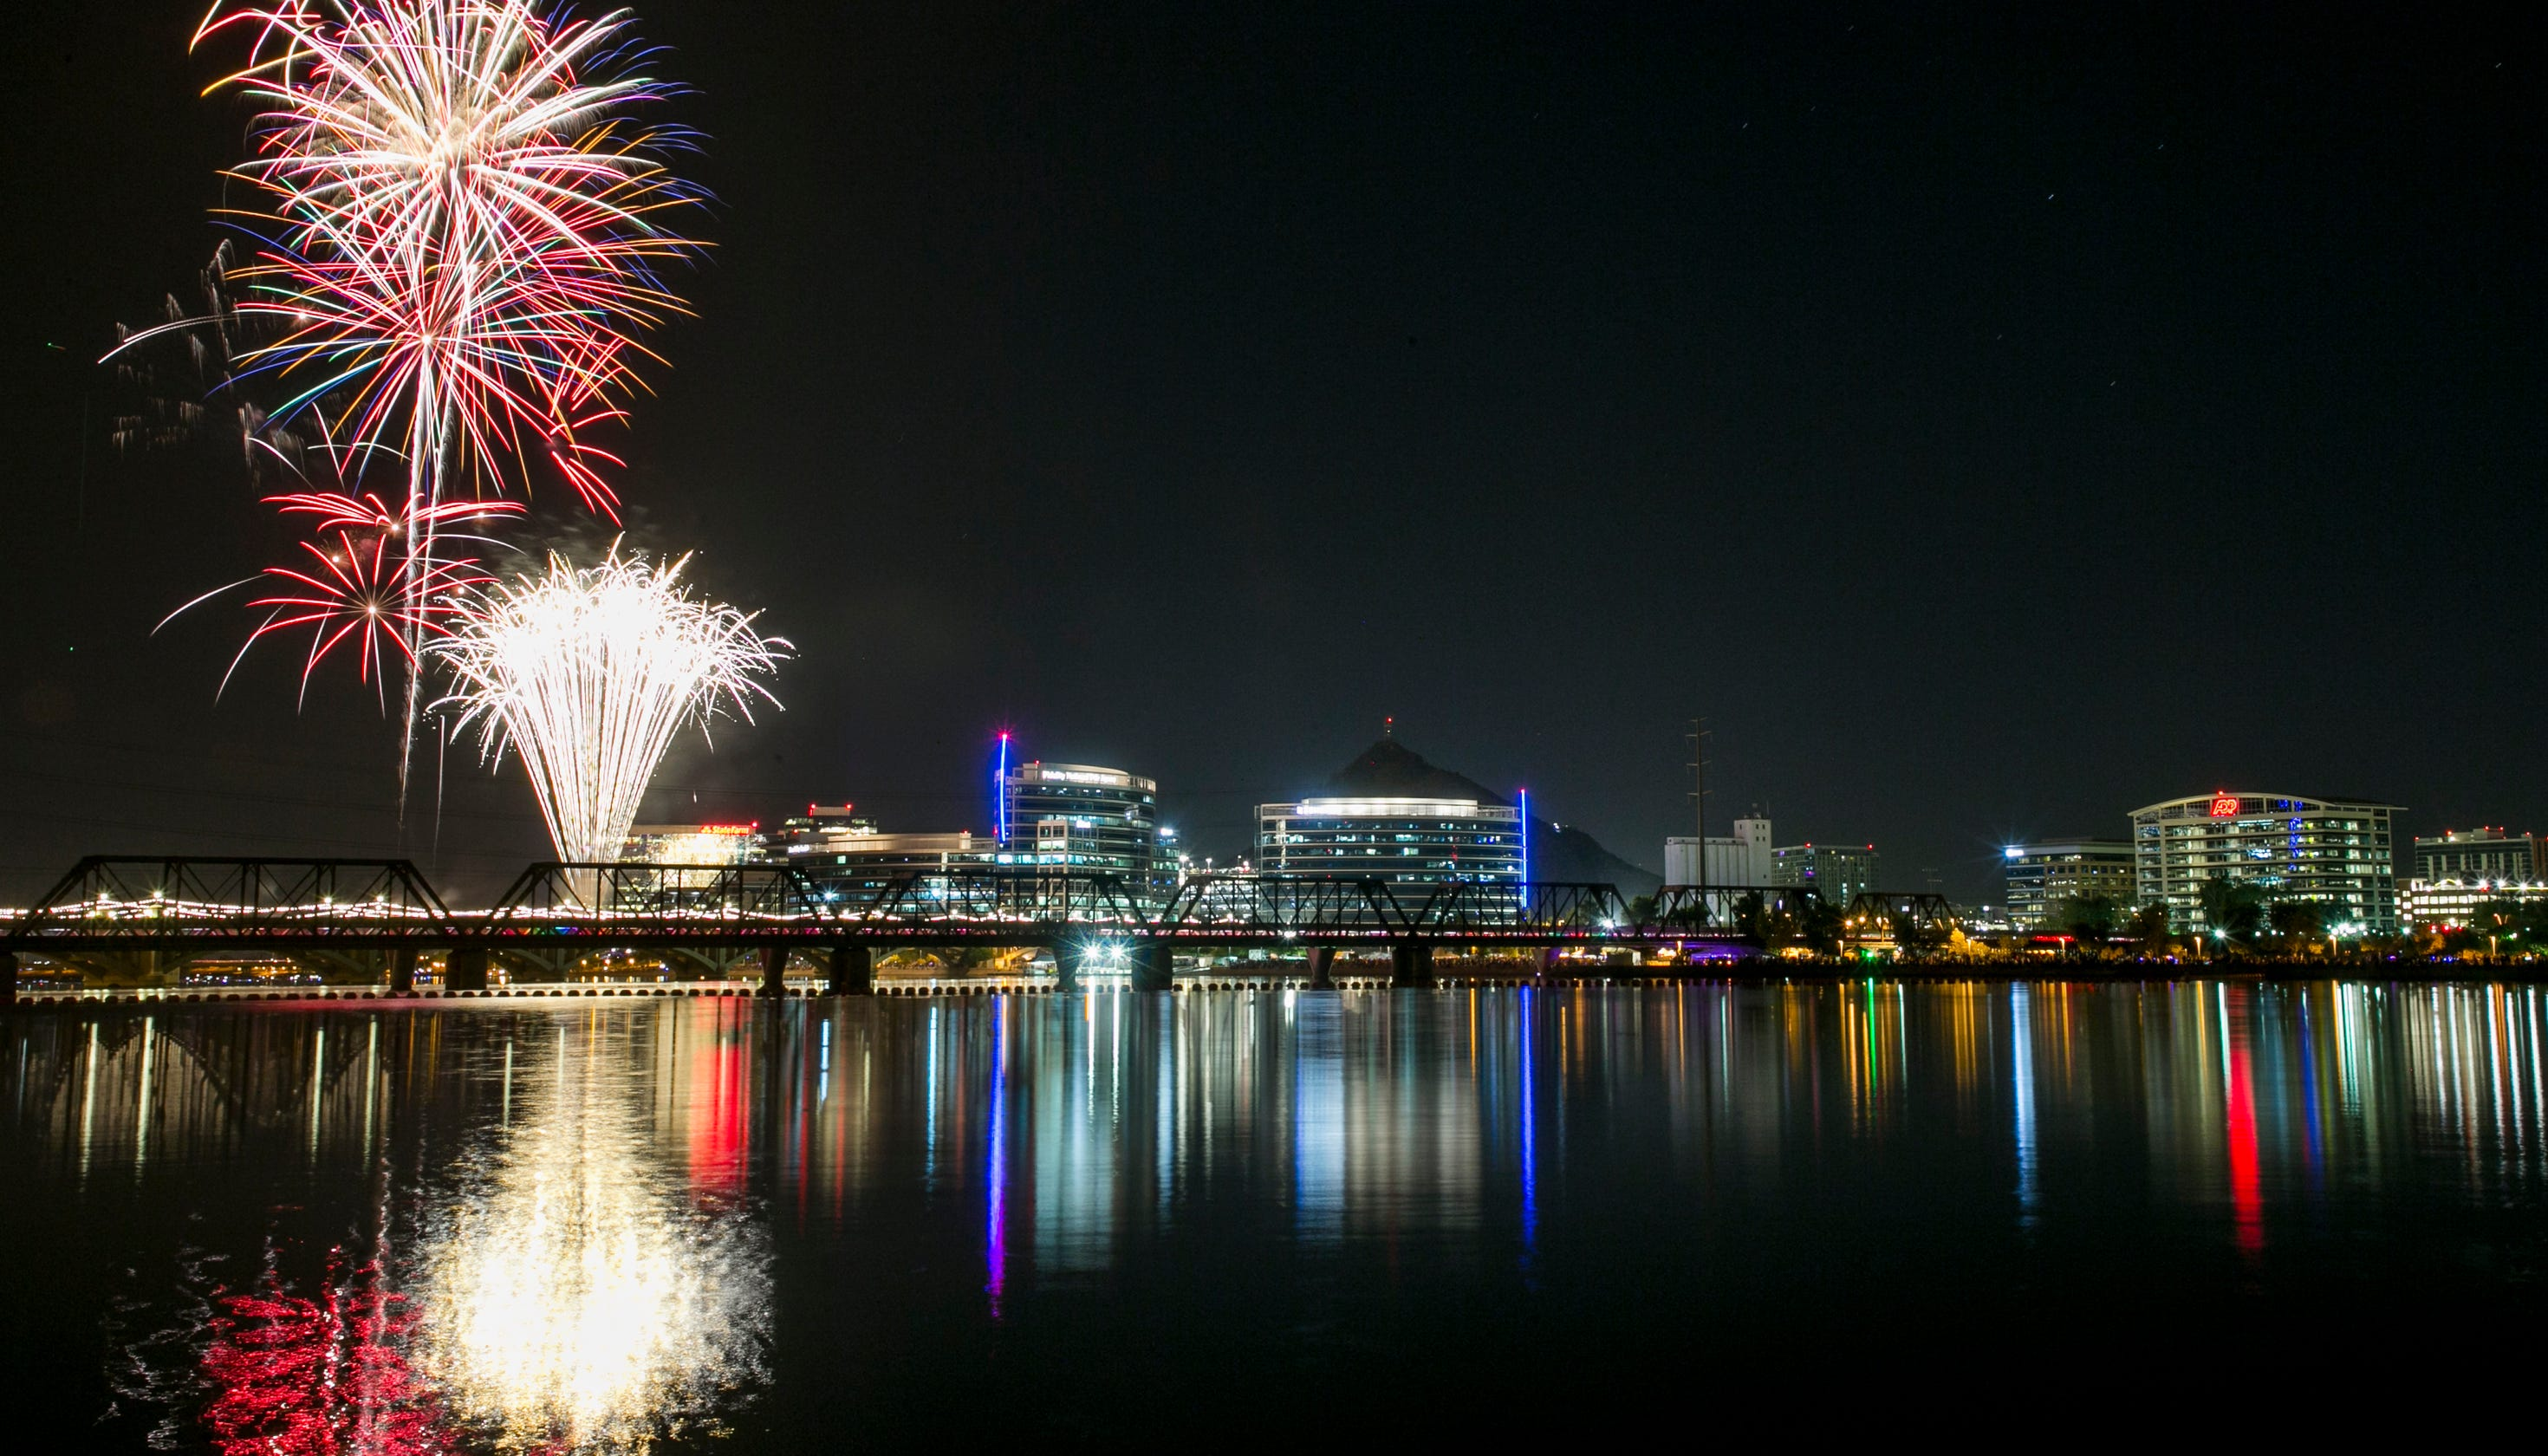 new years eve fireworks in tempe canceled due to dry conditions